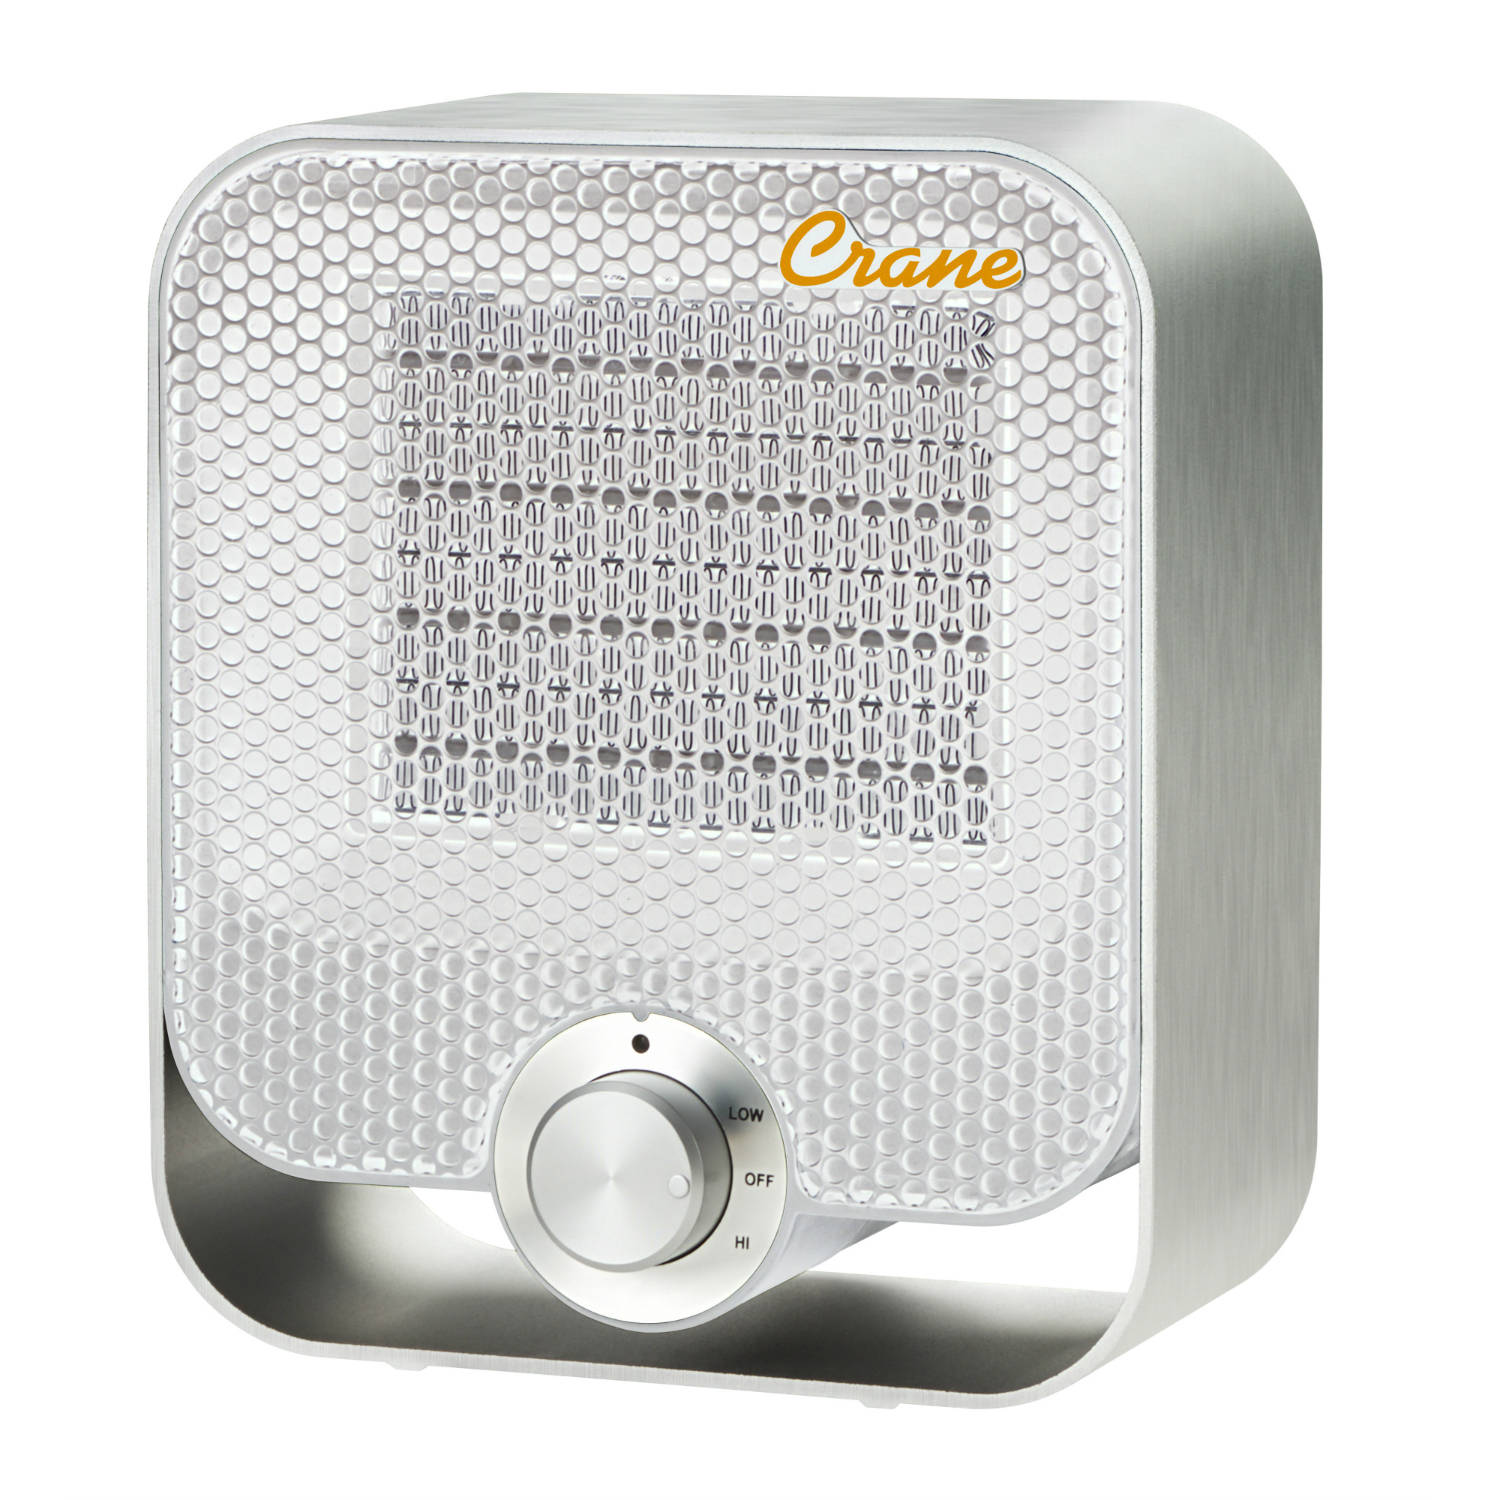 Crane Ceramic Personal Heater - White